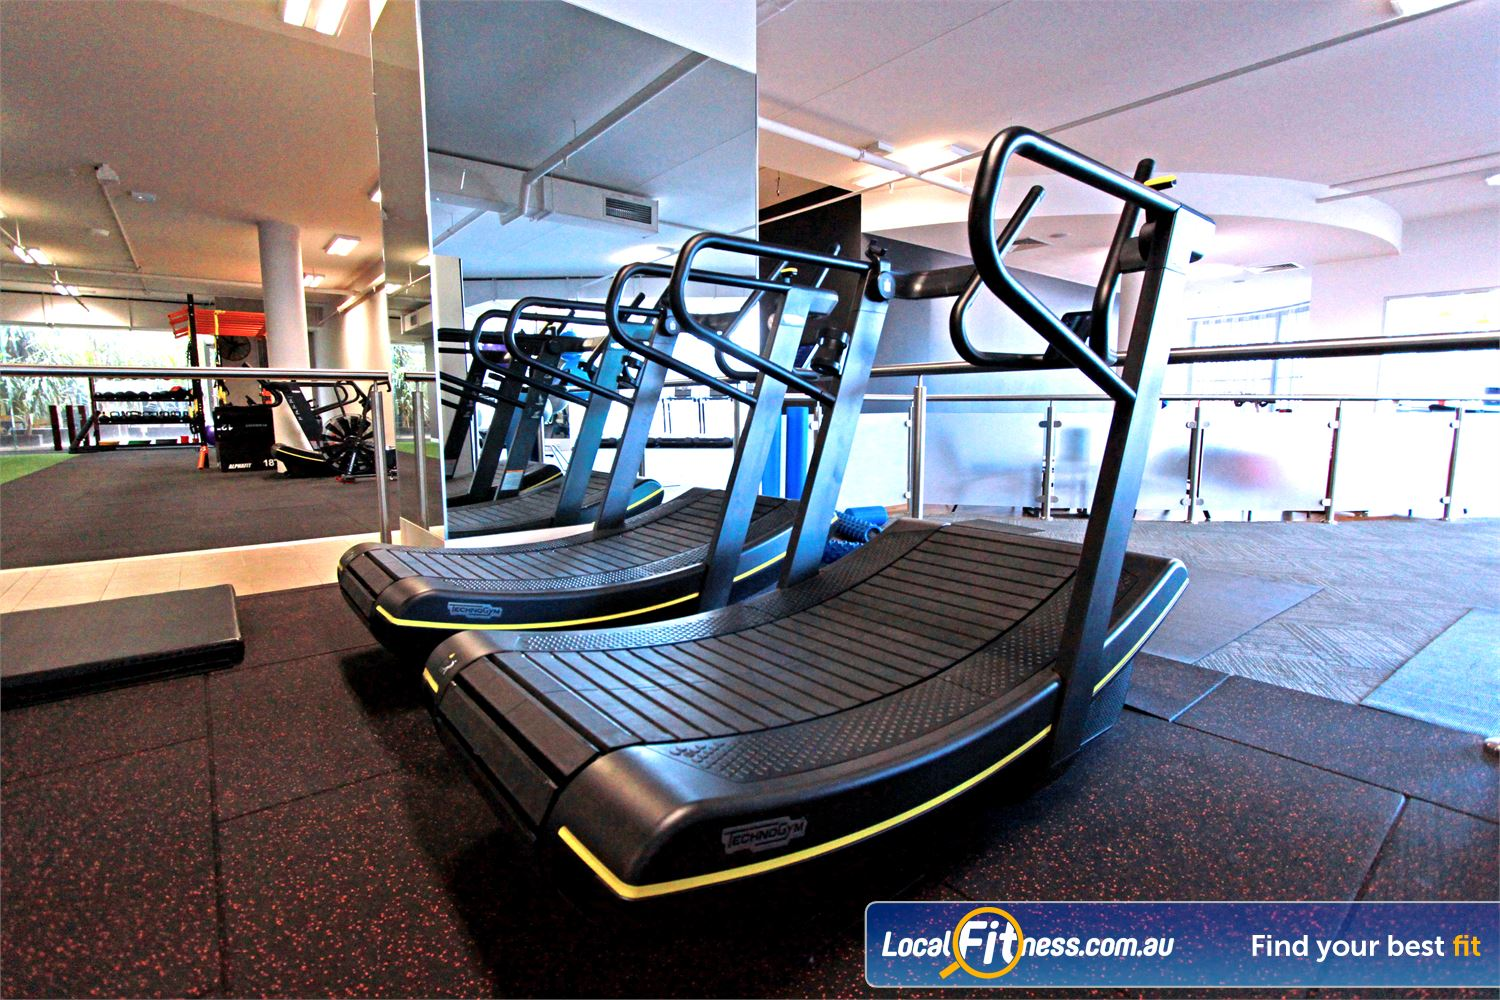 South Pacific Health Clubs Near Heatherton Our Mentone gym features the revolutionary skillmill.